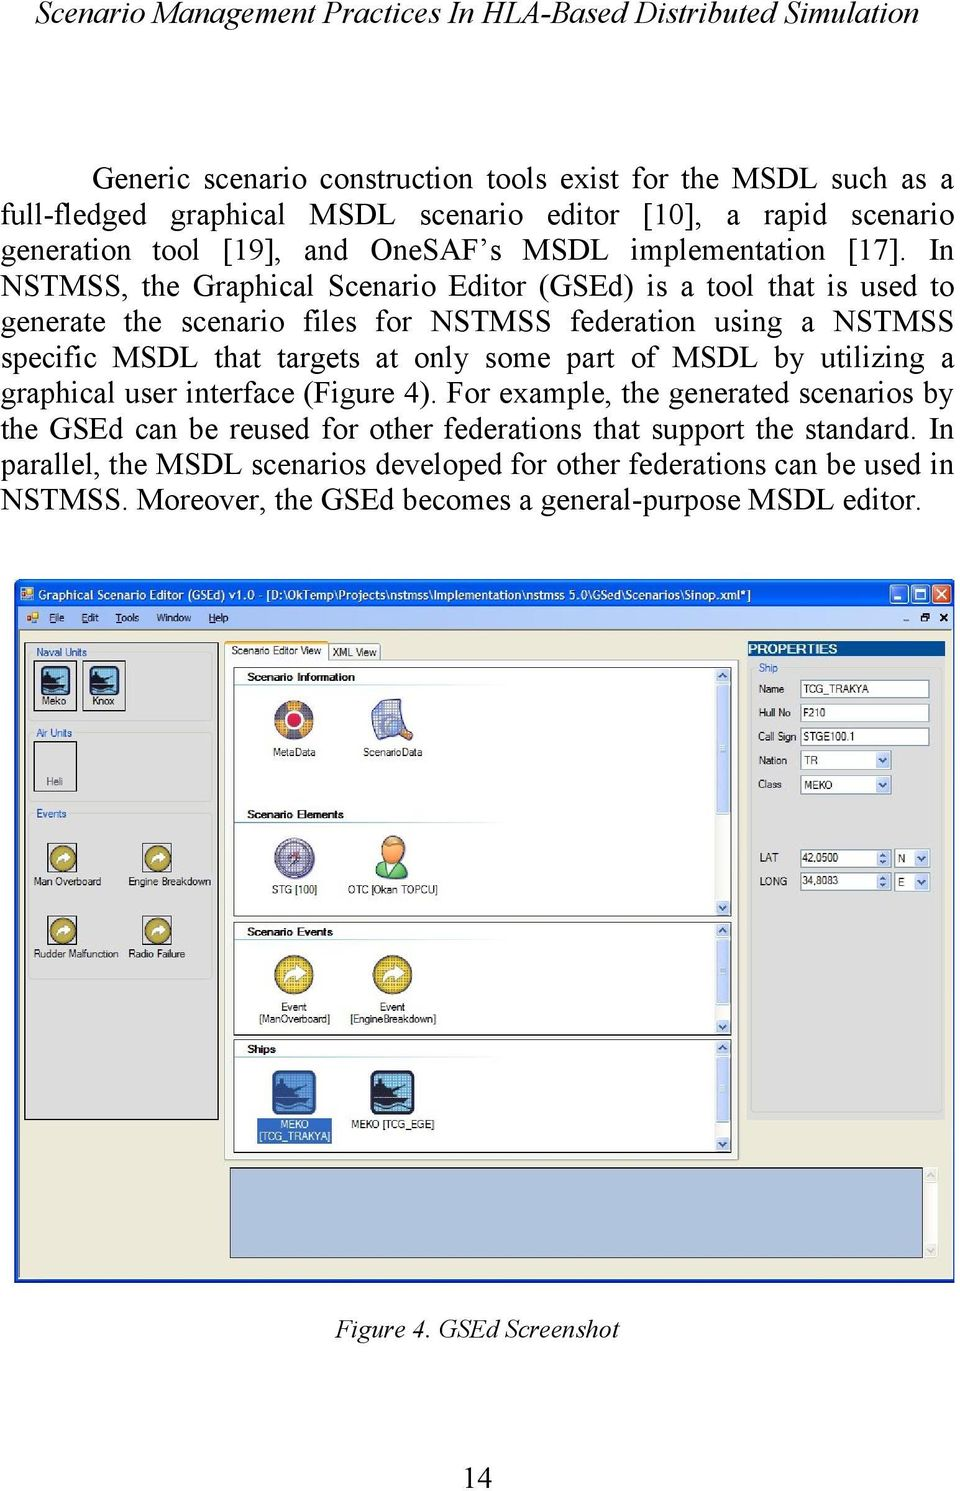 In NSTMSS, the Graphical Scenario Editor (GSEd) is a tool that is used to generate the scenario files for NSTMSS federation using a NSTMSS specific MSDL that targets at only some part of MSDL by